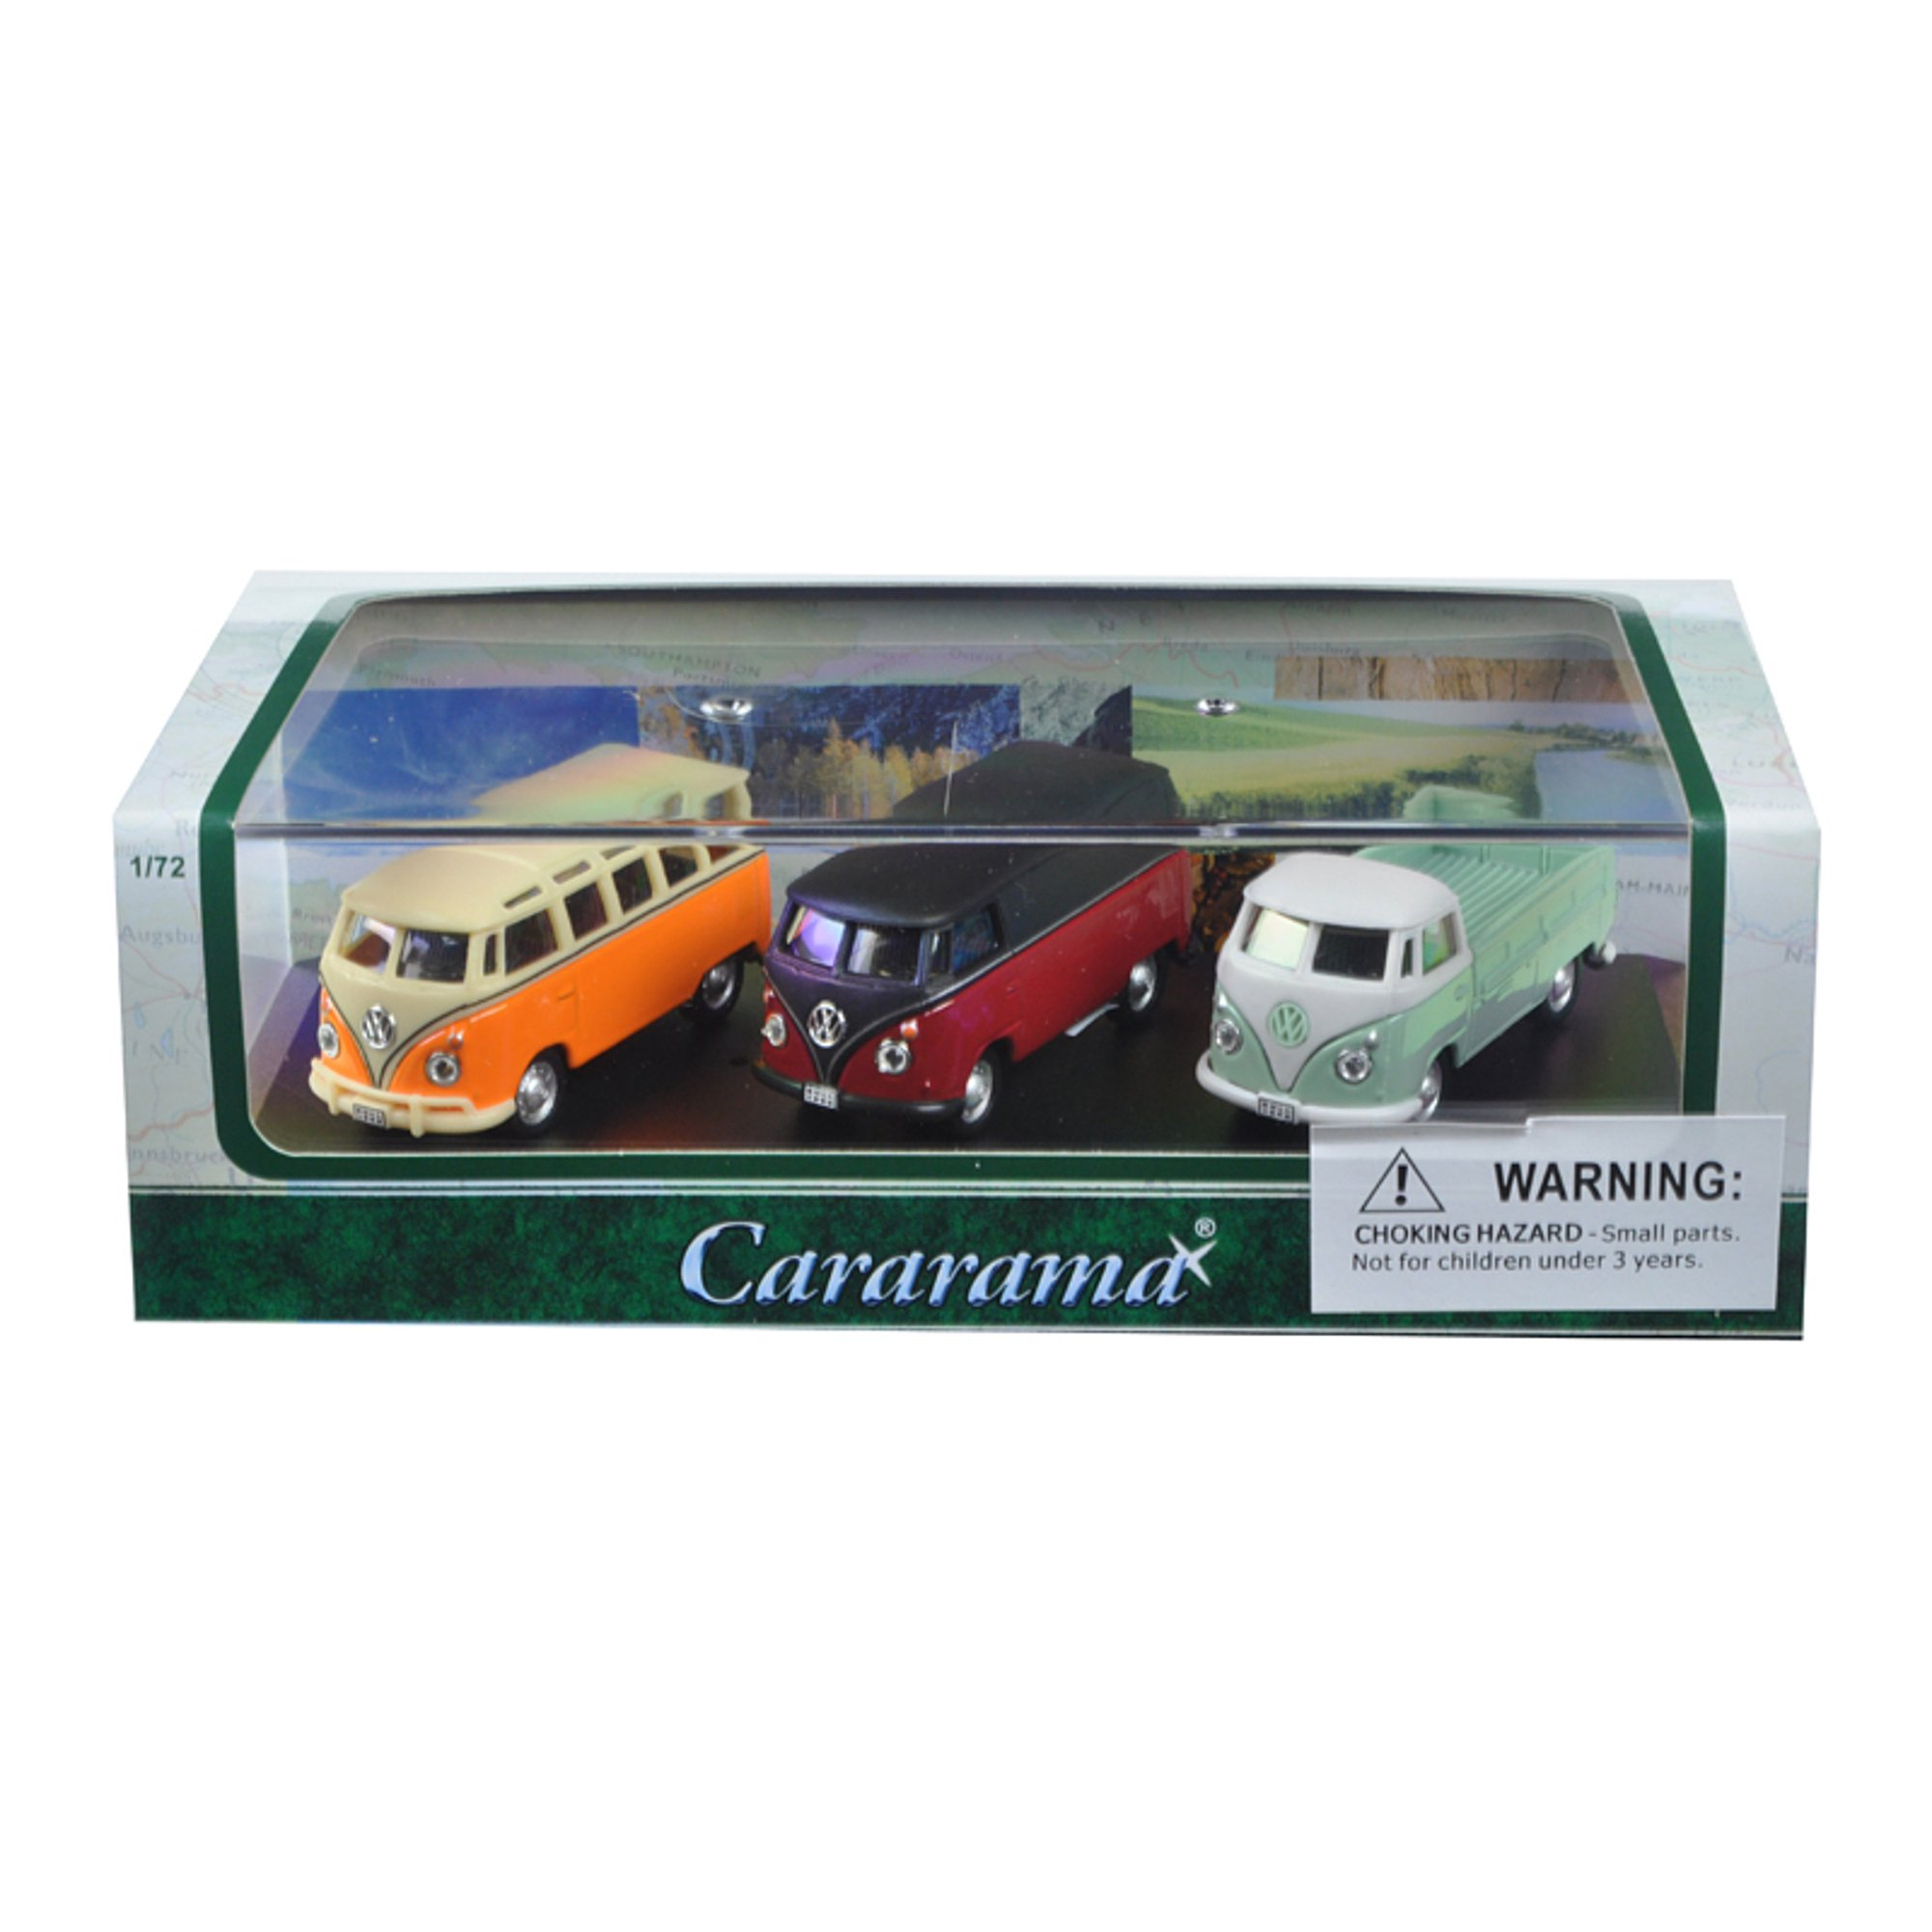 Volkswagen Bus 3 Piece Gift Set In Display Showcase 1 72 Cast Model Cars By Cararama Canada